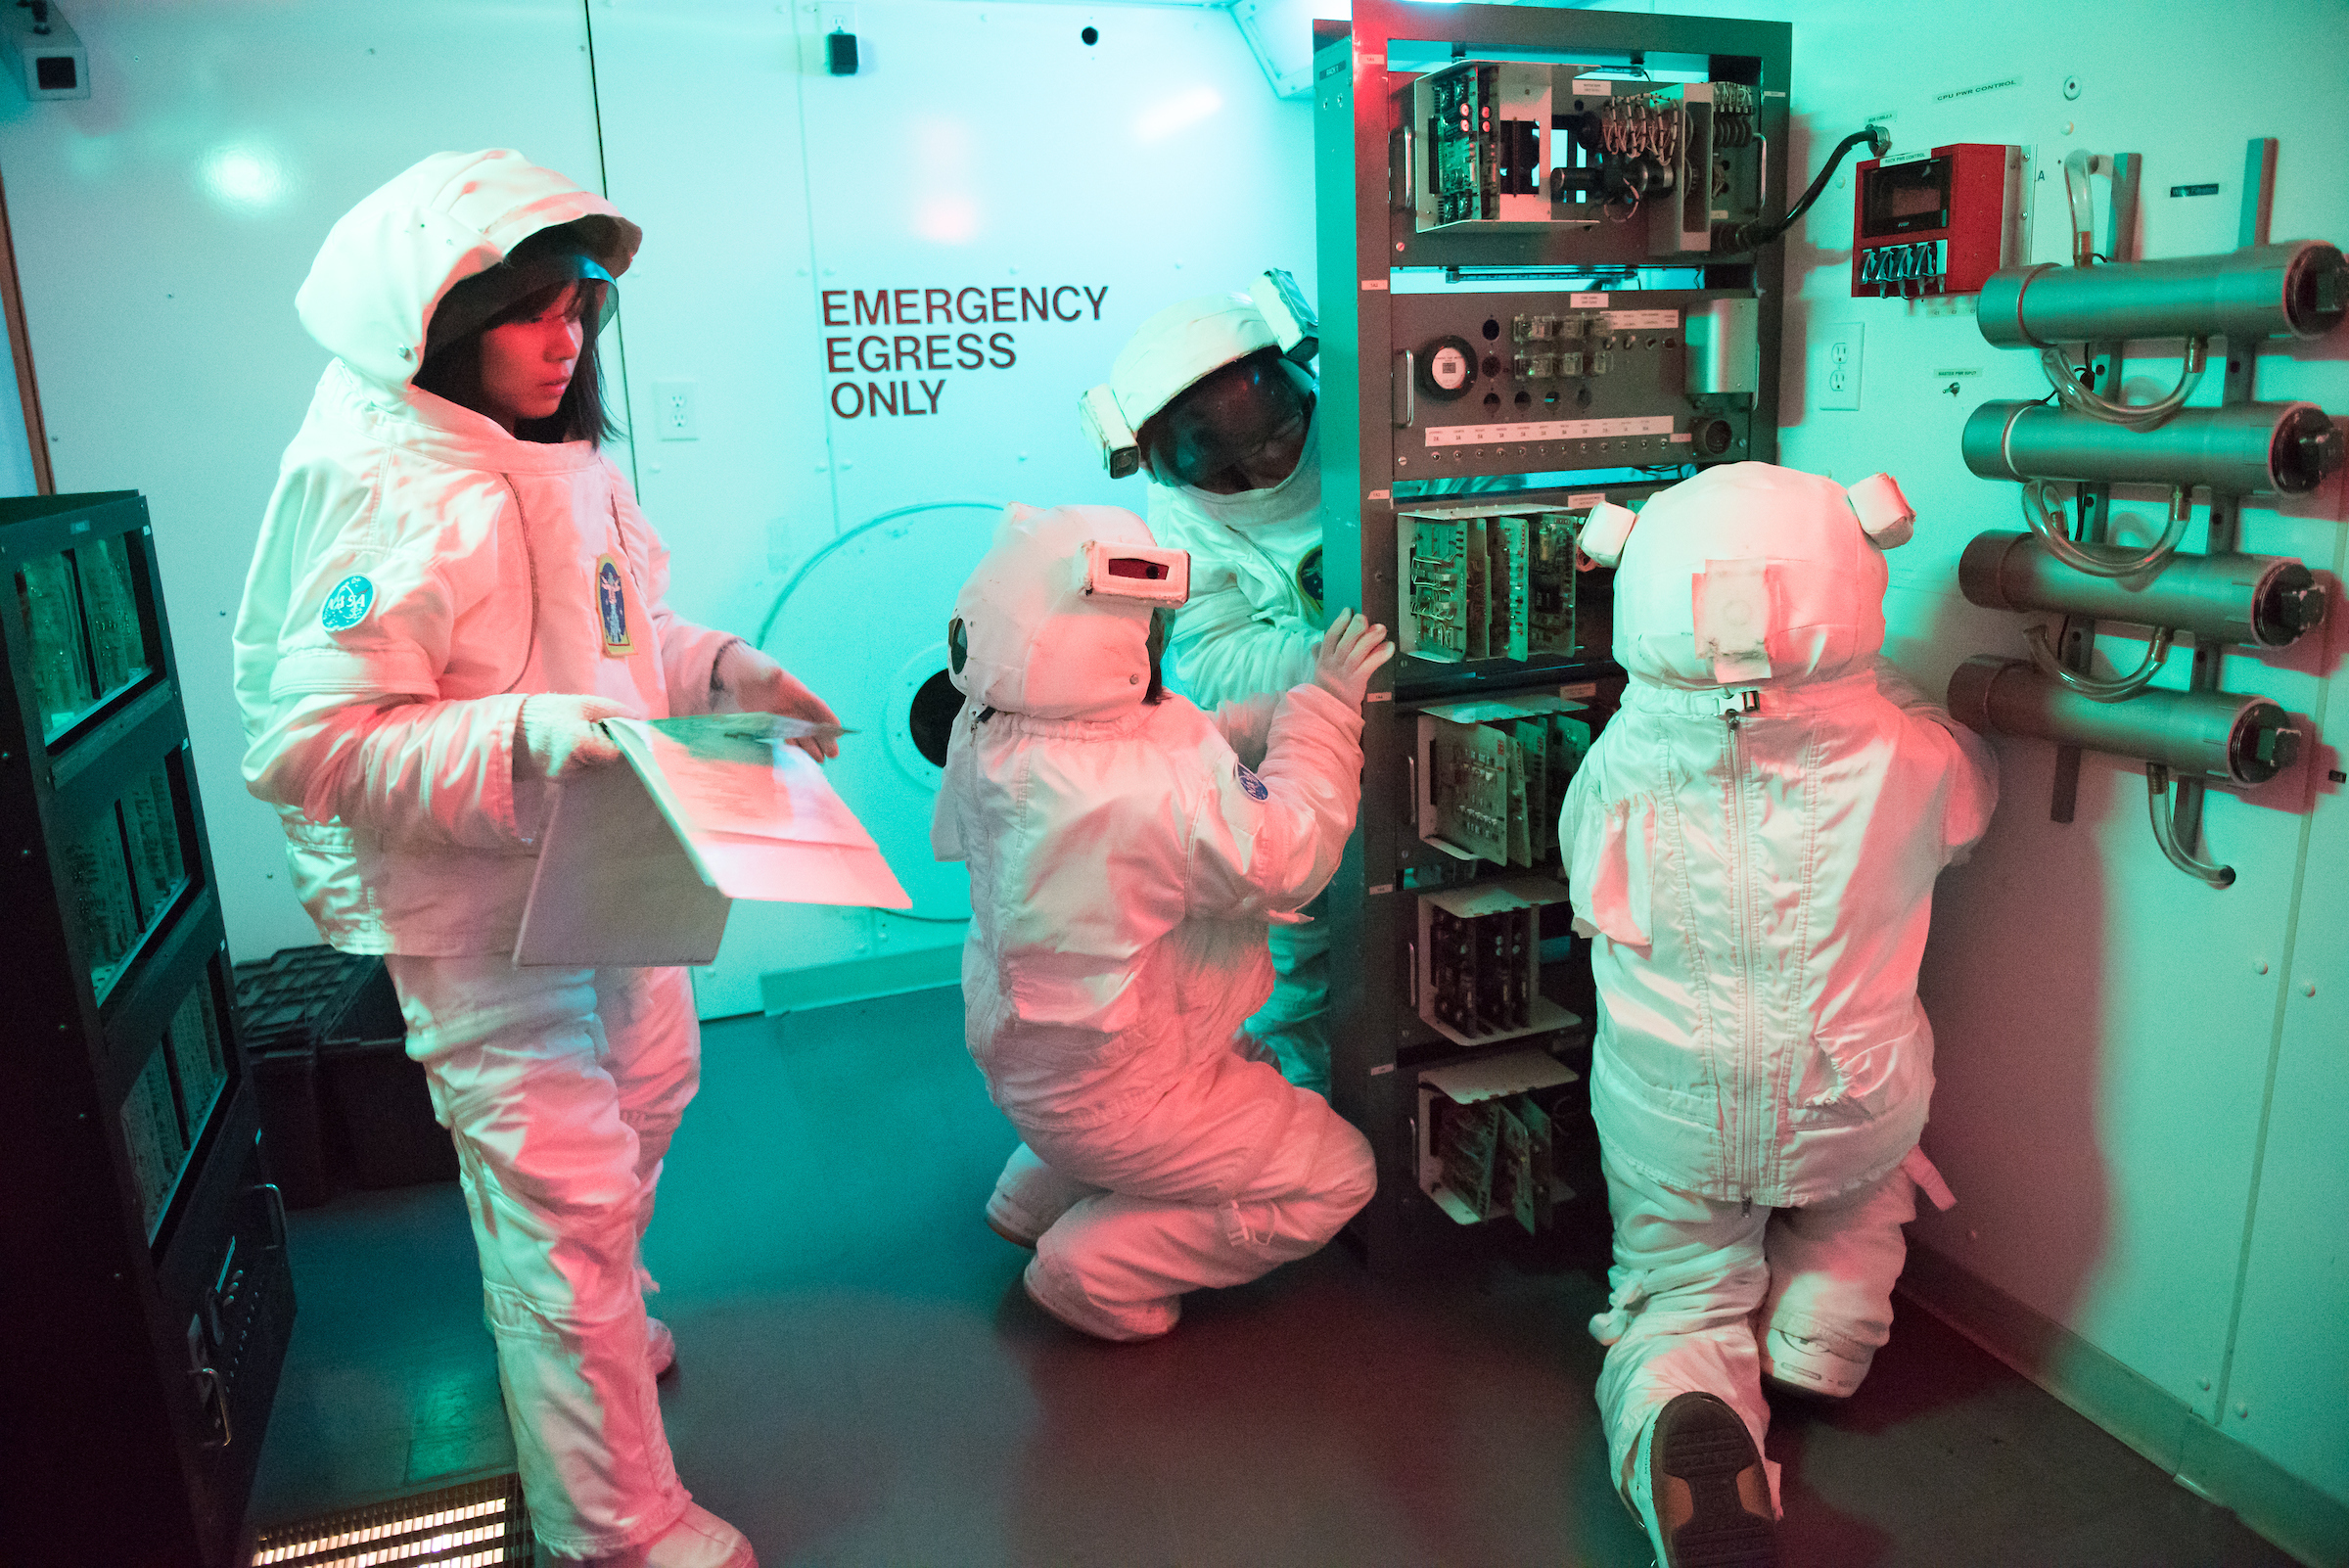 Team Destiny on their Bravo space mission at the U.S. Space and Rocket Center. During Honeywell Educators at Space Academy, teachers break into teams and become astronauts on scenario-based missions.